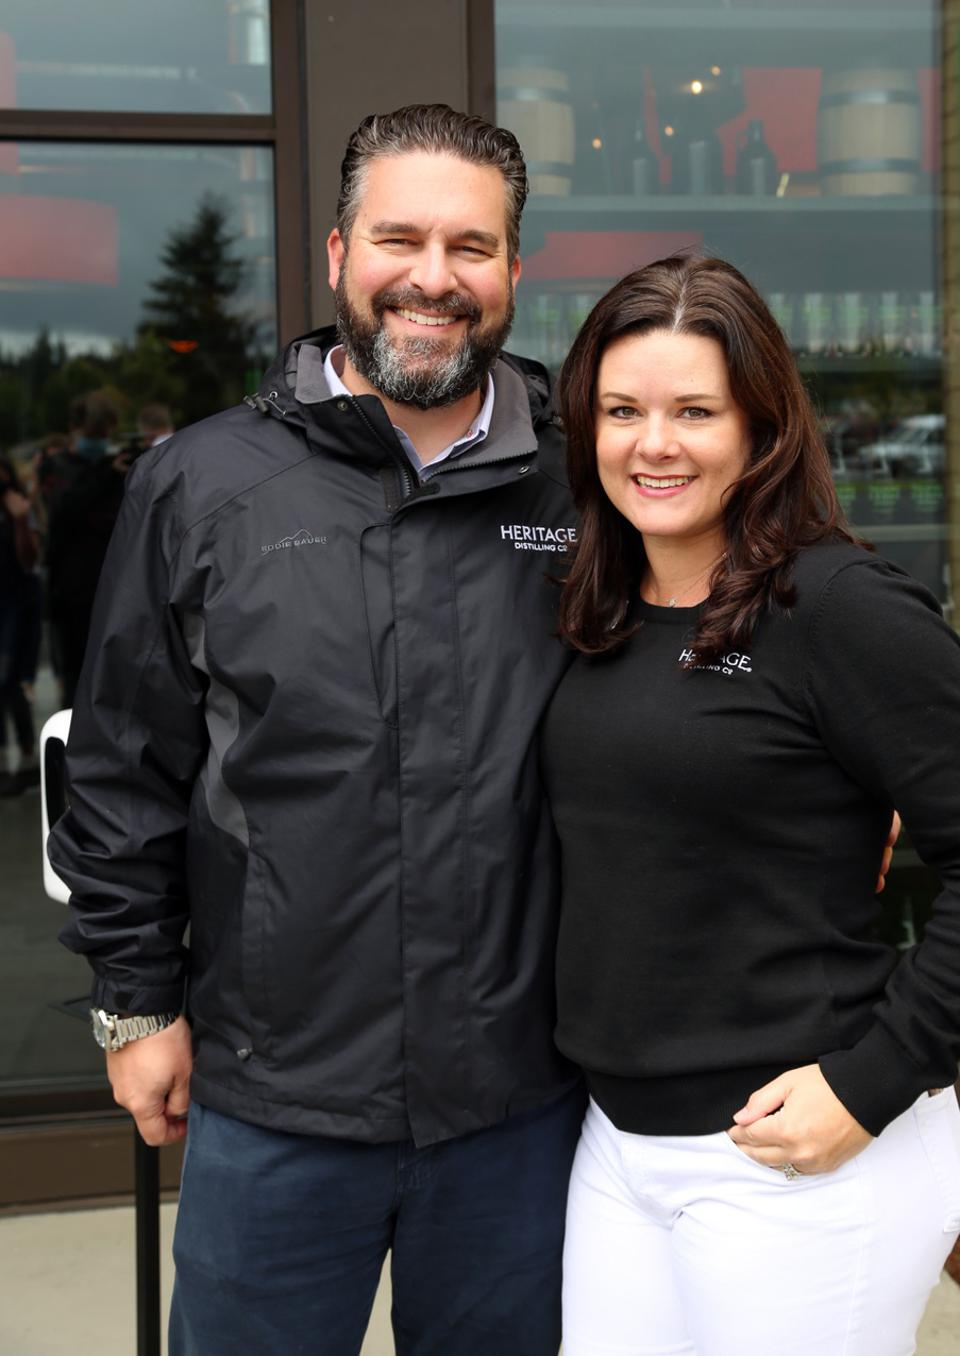 Heritage Distilling Co., owners Justin and Jennifer Stiefel are looking to go global.